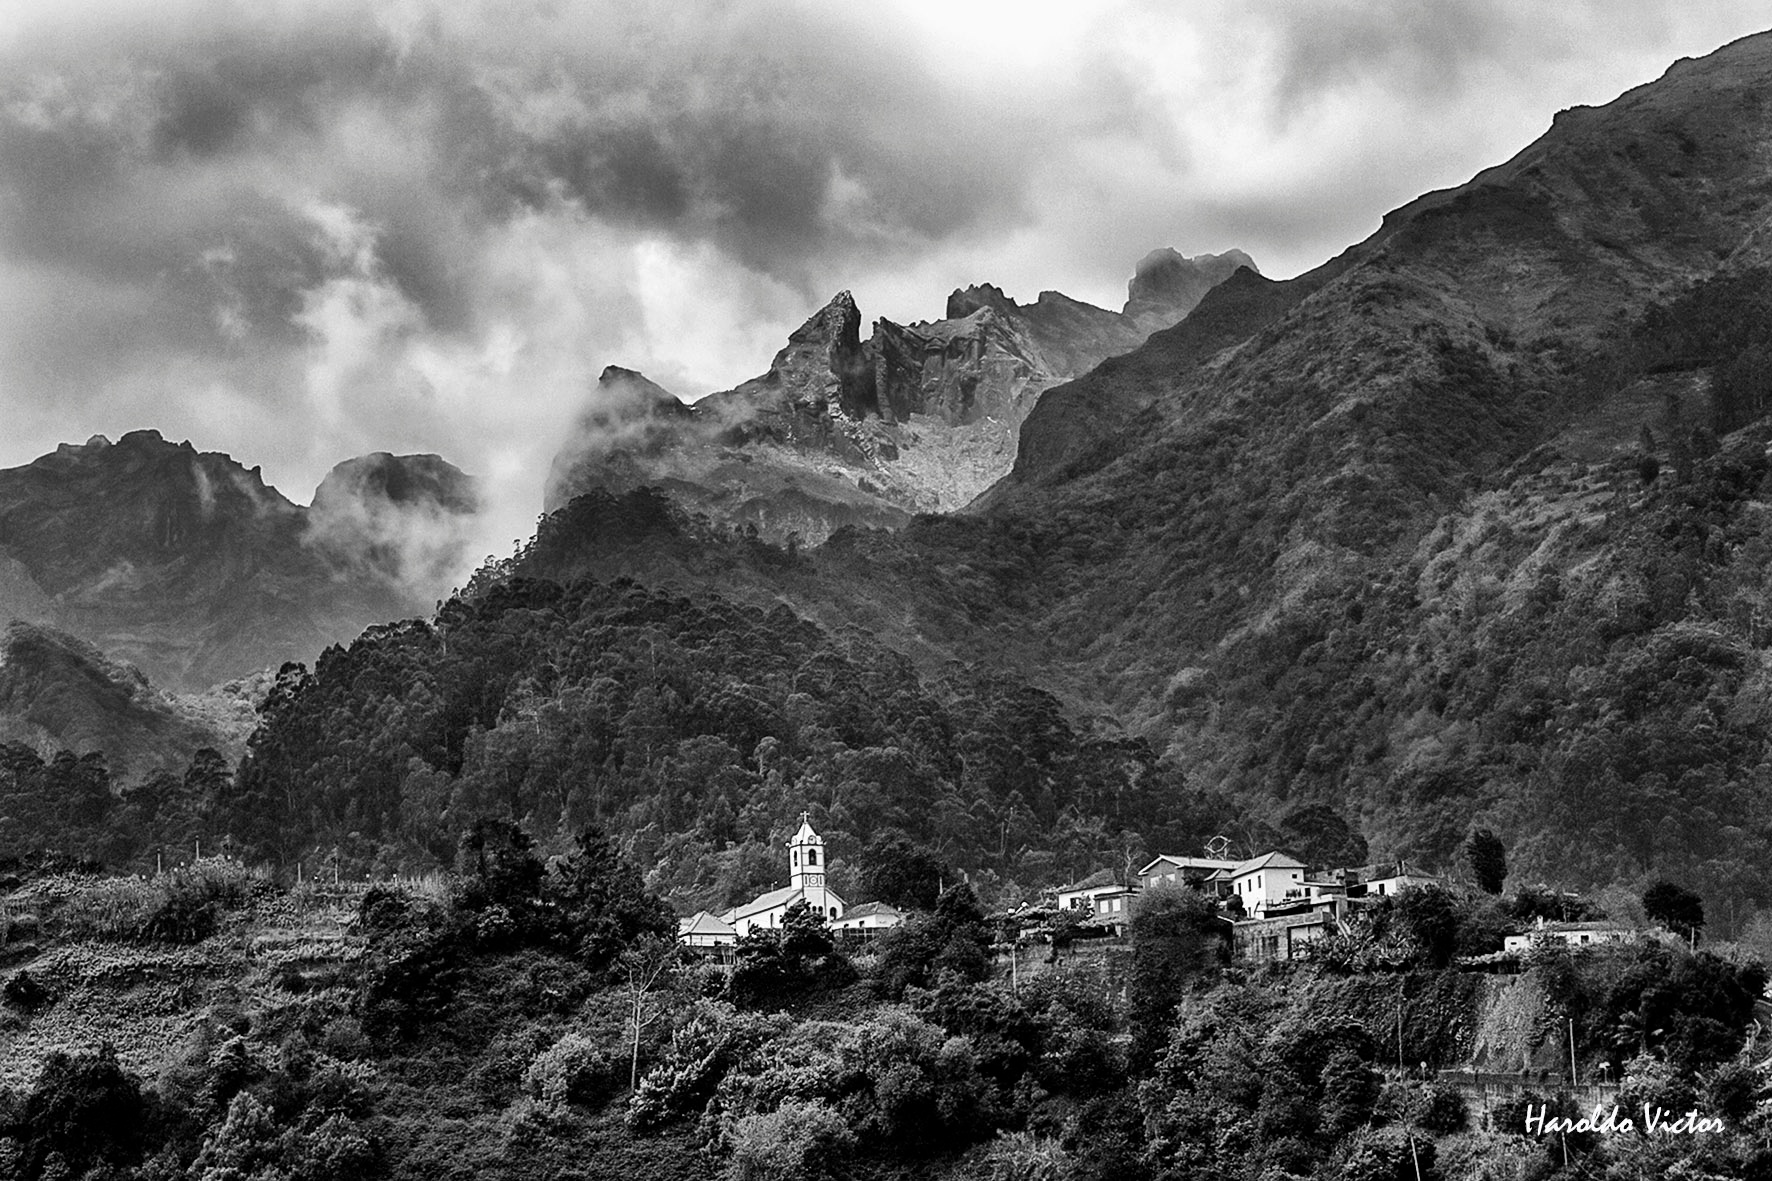 Church in the mountains by Haroldo Victor